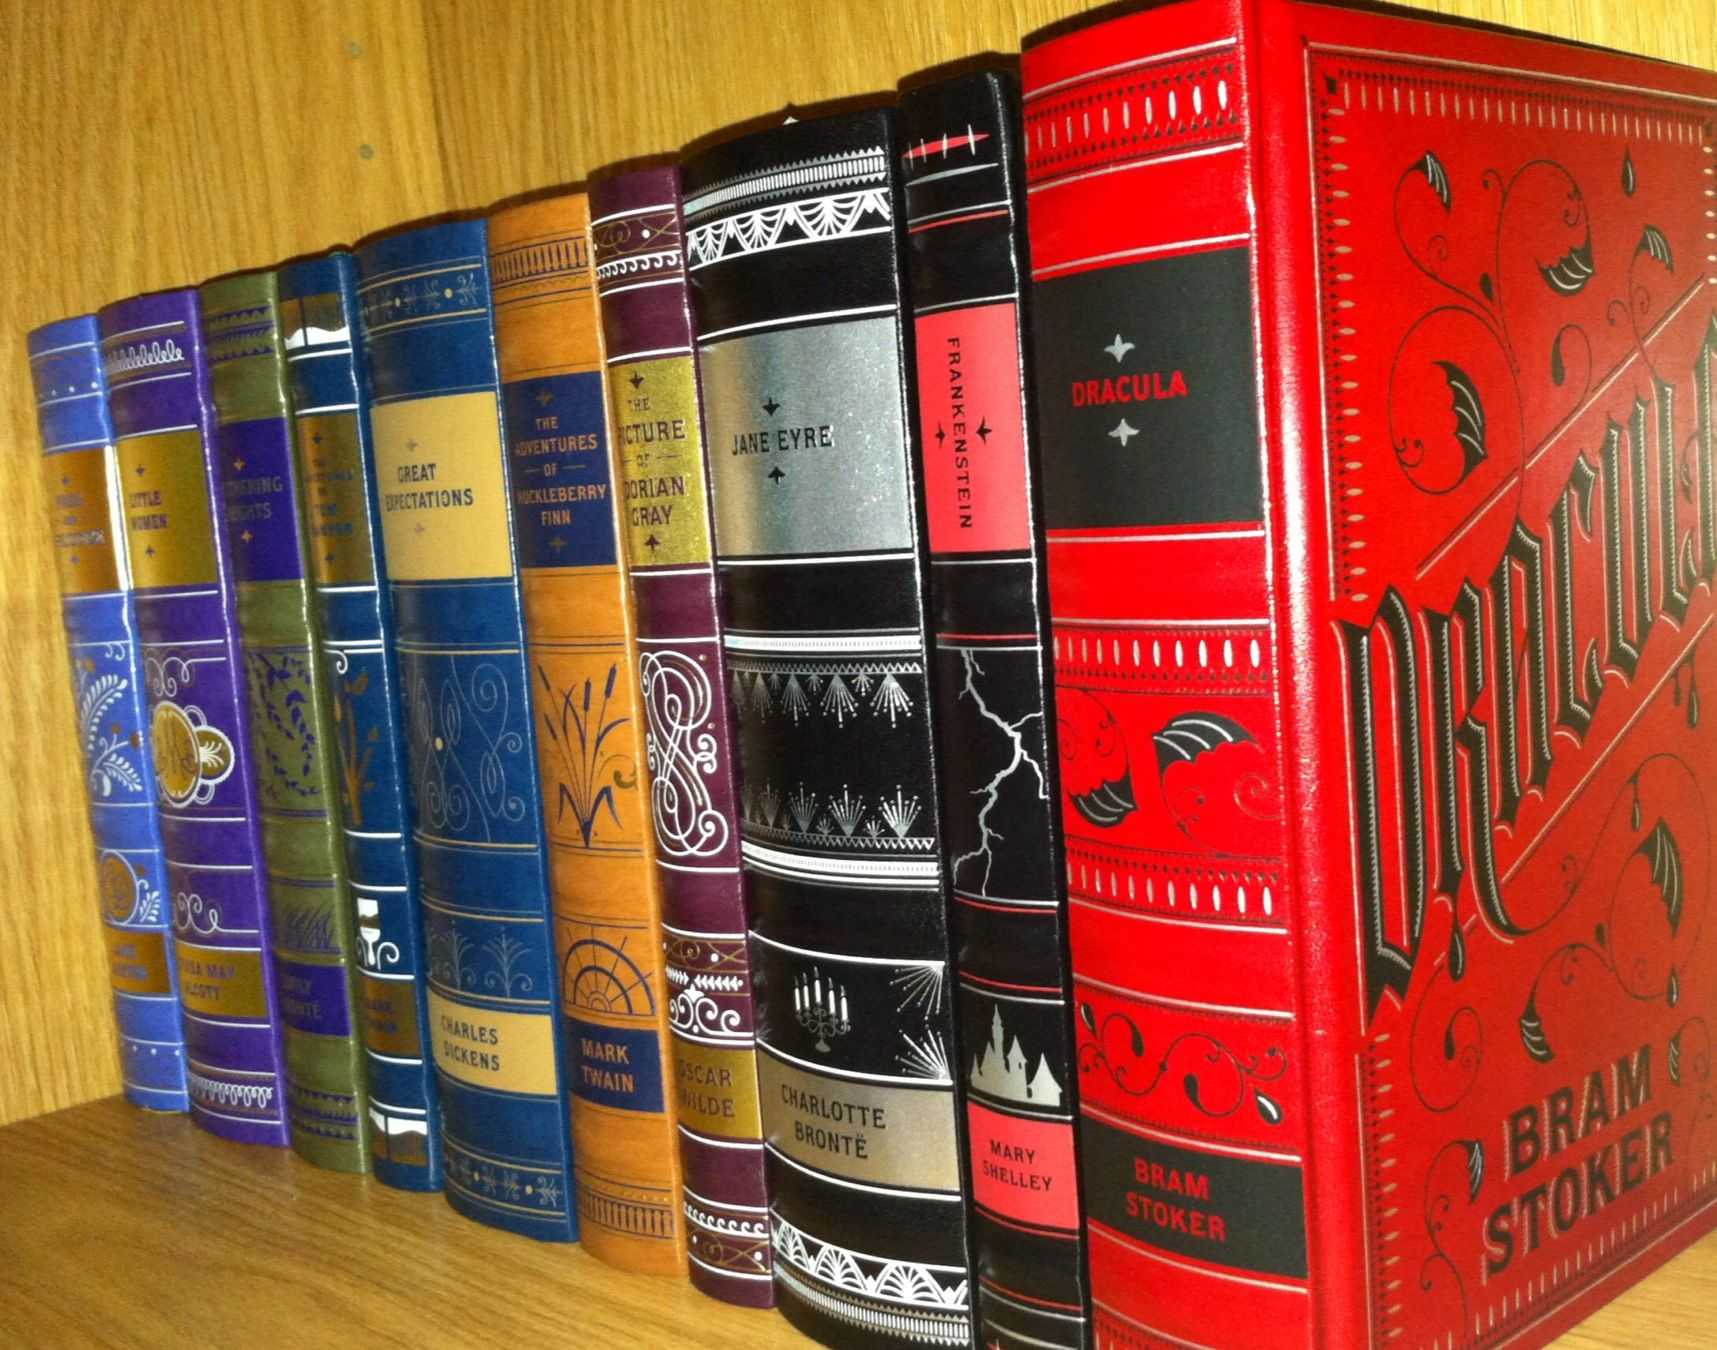 Beautiful Barnes and noble leather bound classics books part of